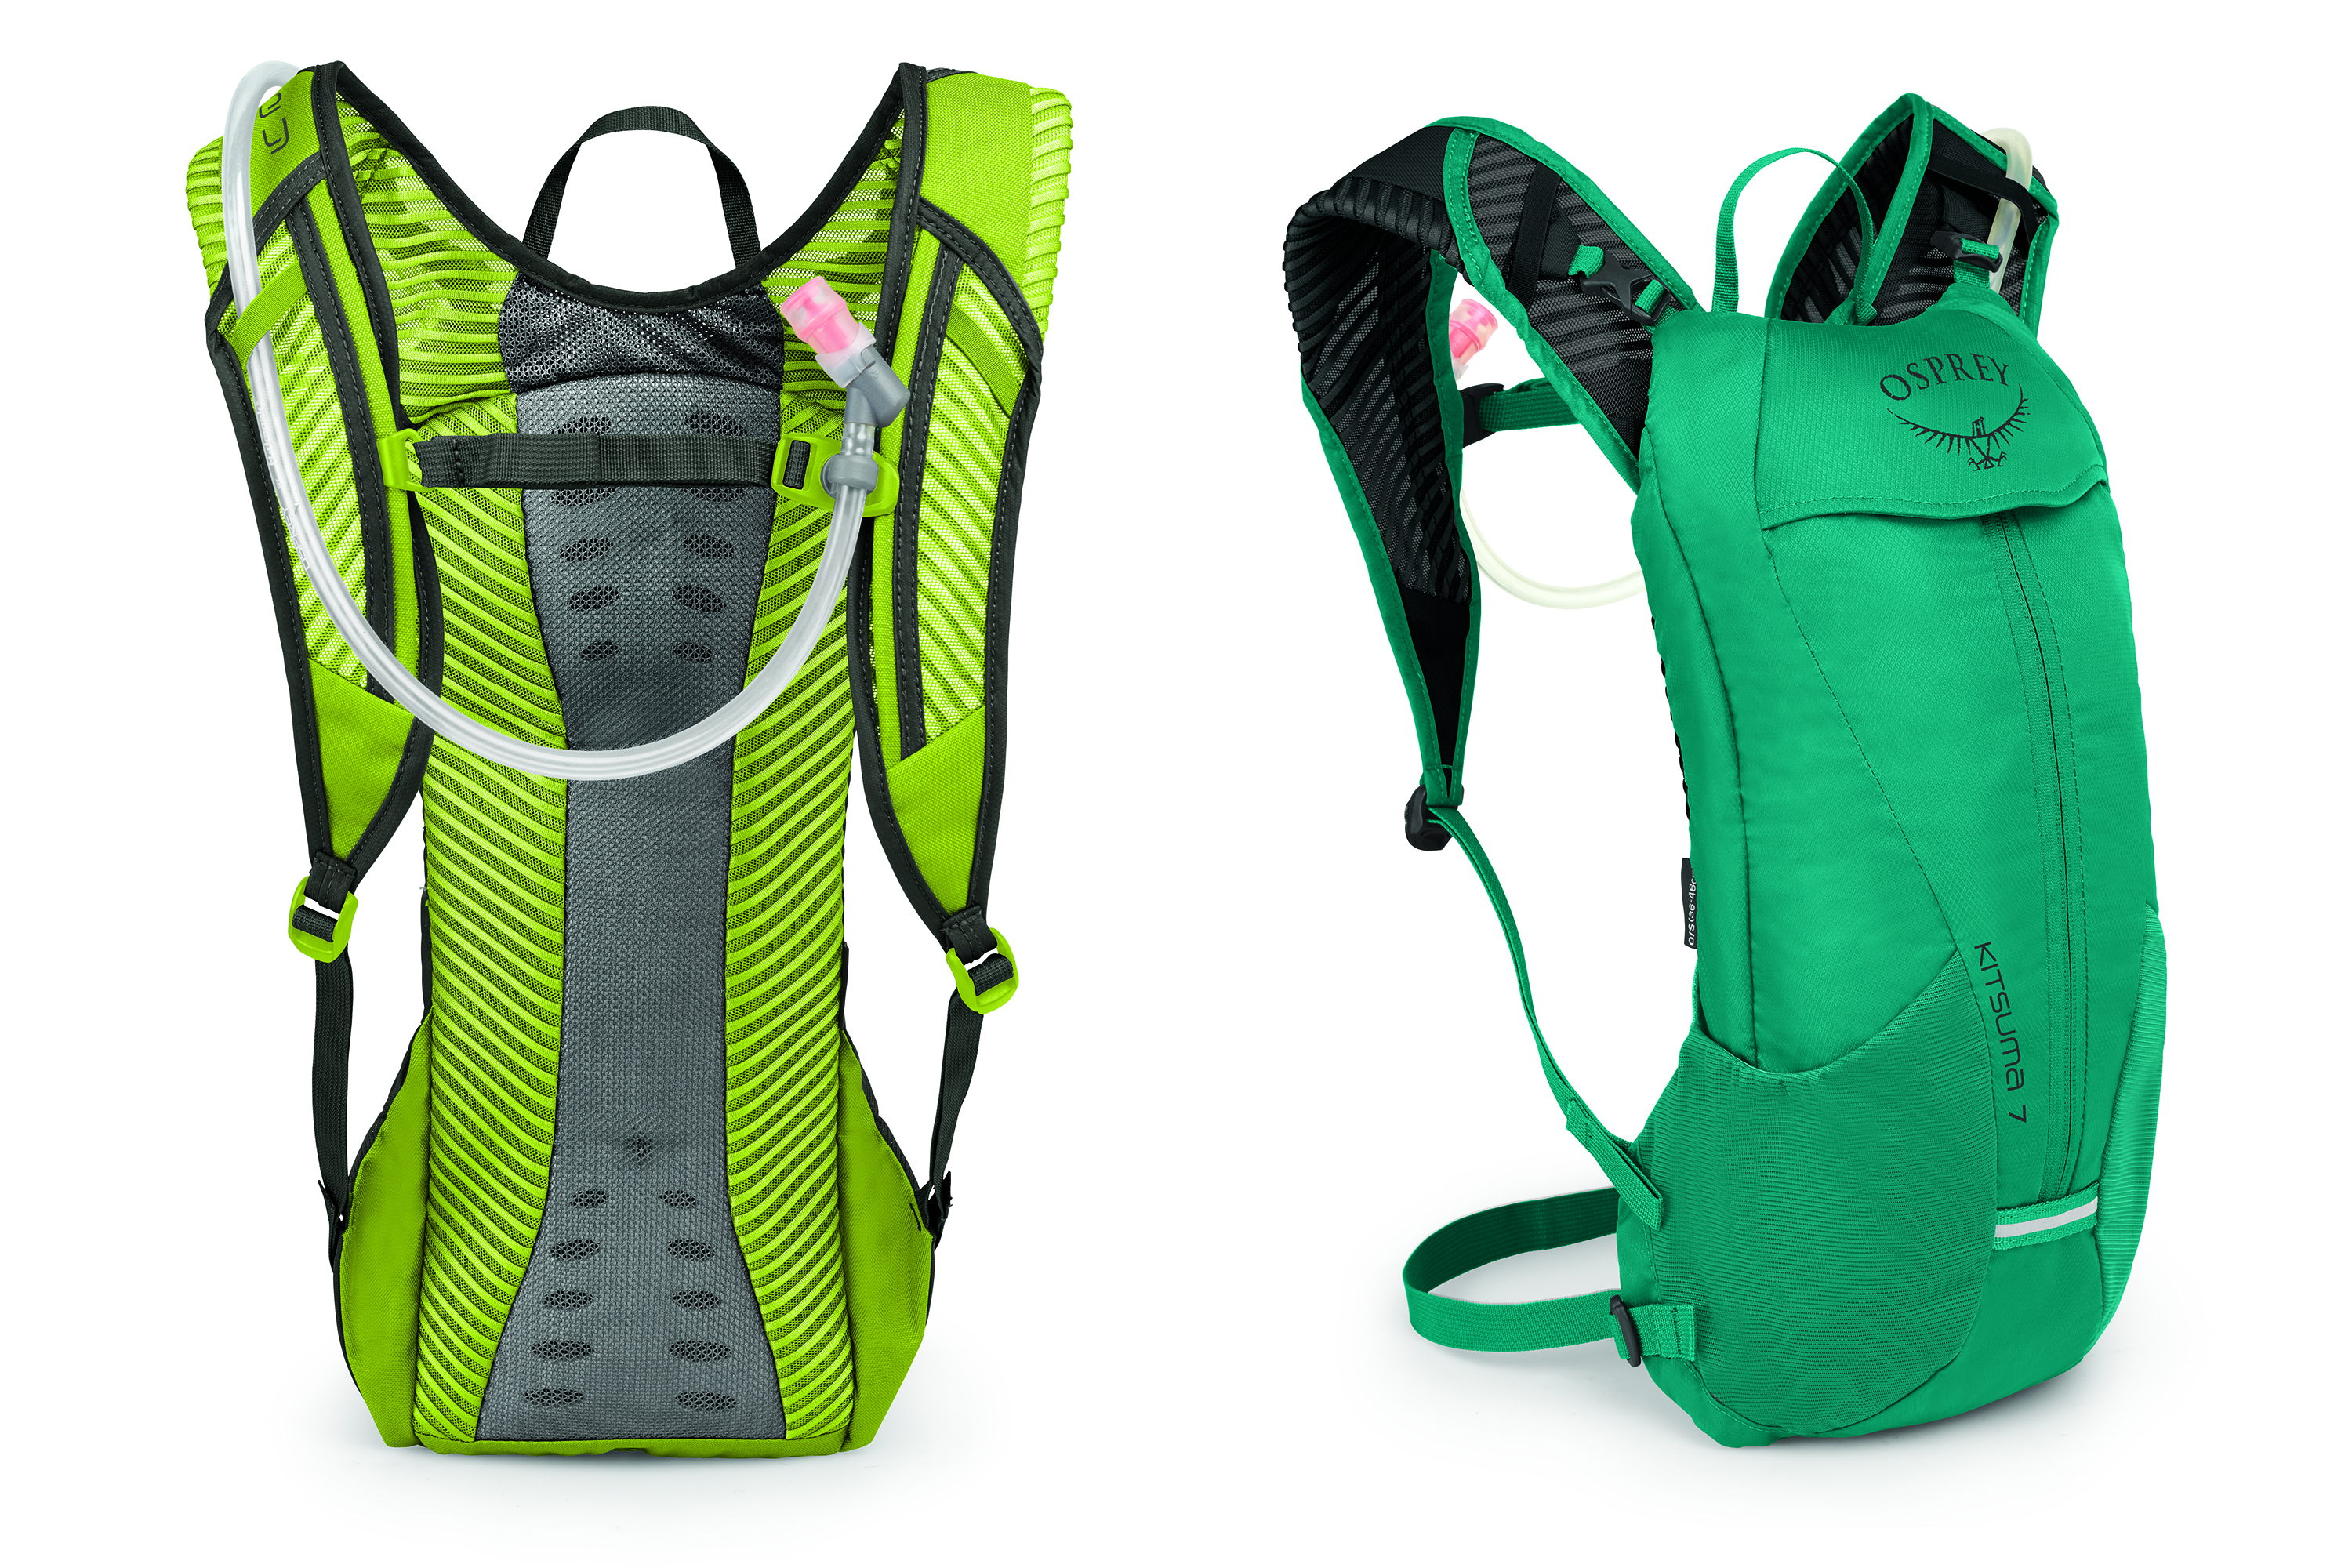 0abe14b64f43 Hydration Wars: Osprey Revamps Cycling Pack Line for 2019 | GearJunkie